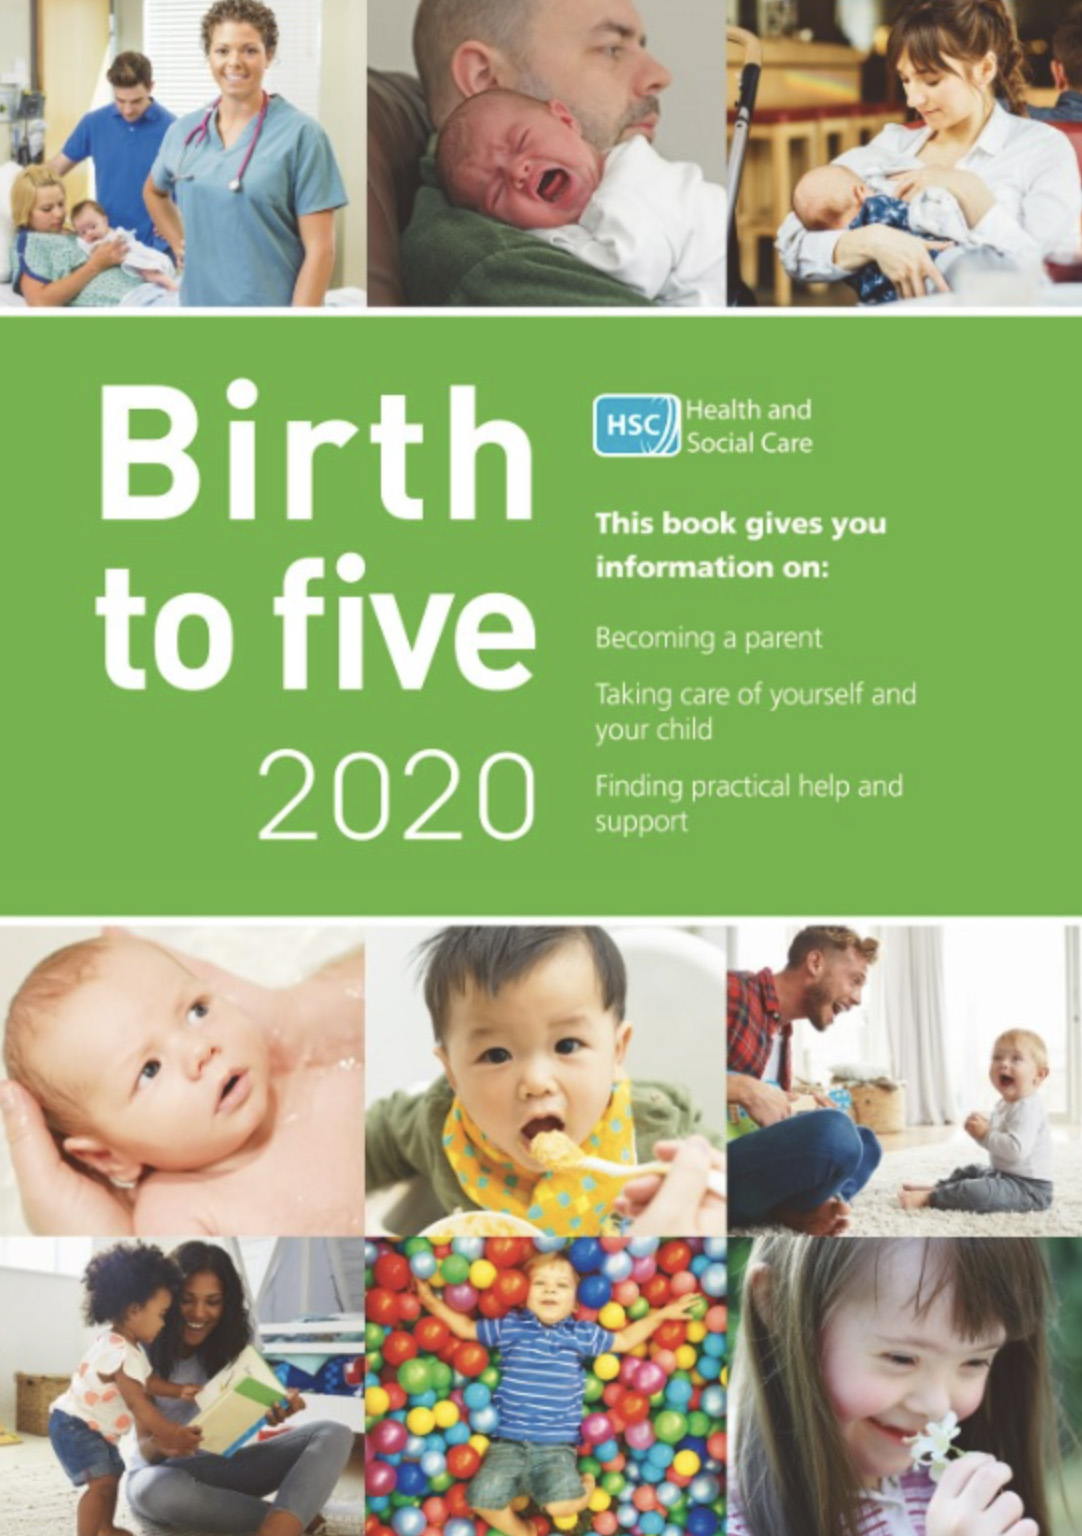 Cover of birth to five 2020